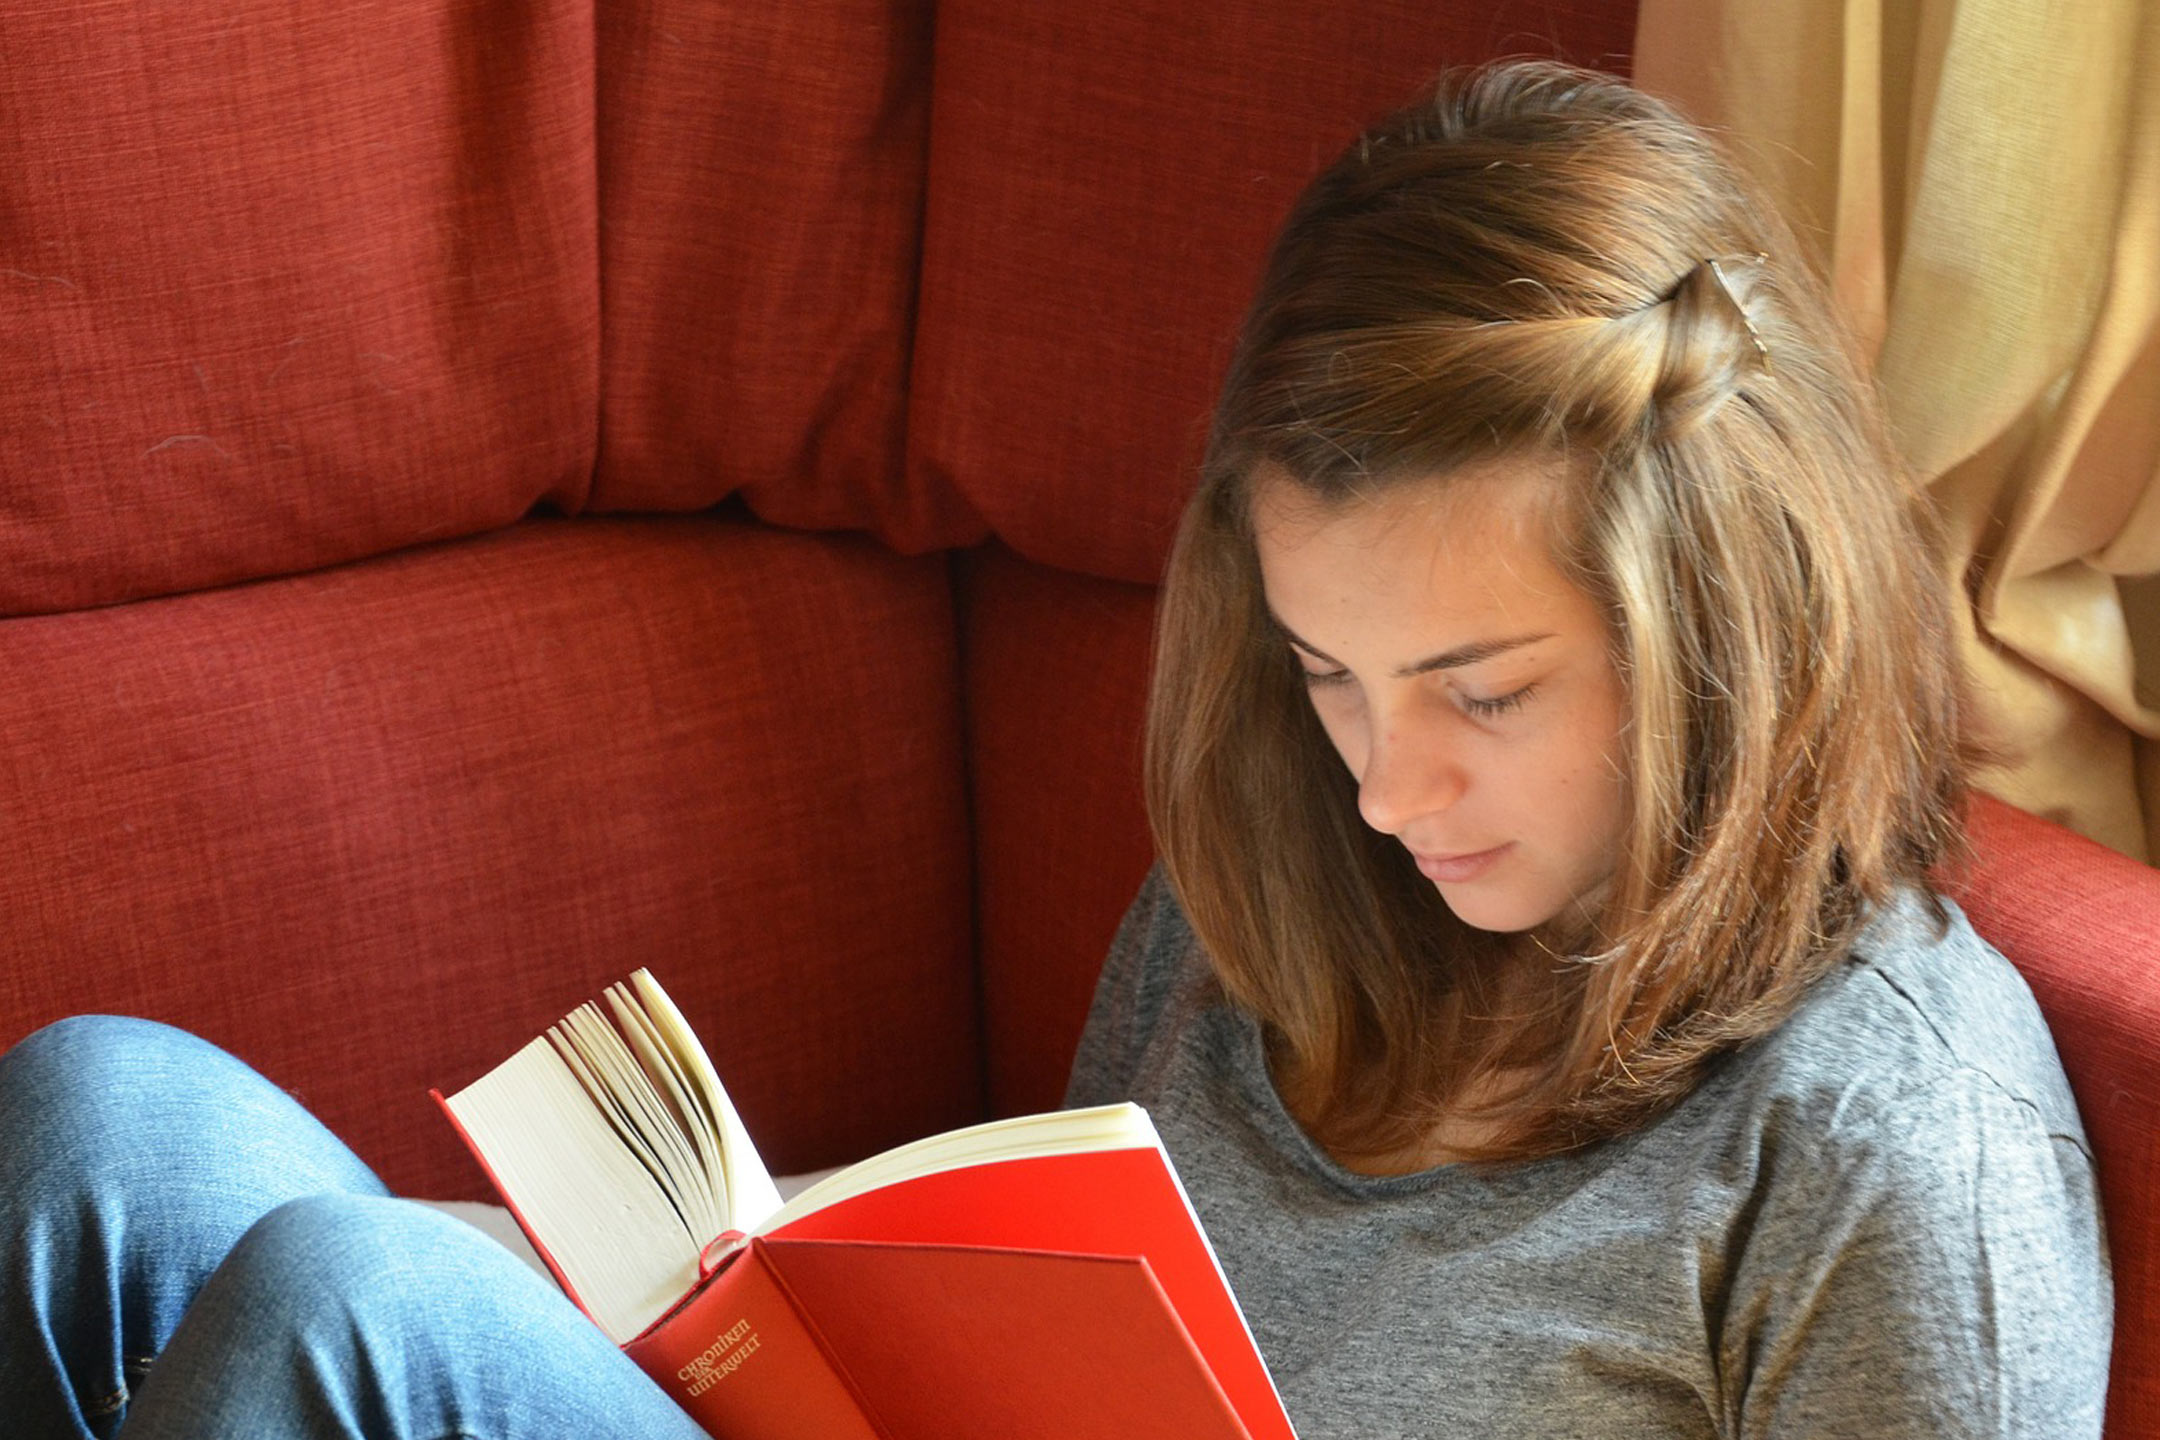 teen-reading-on-couch2160